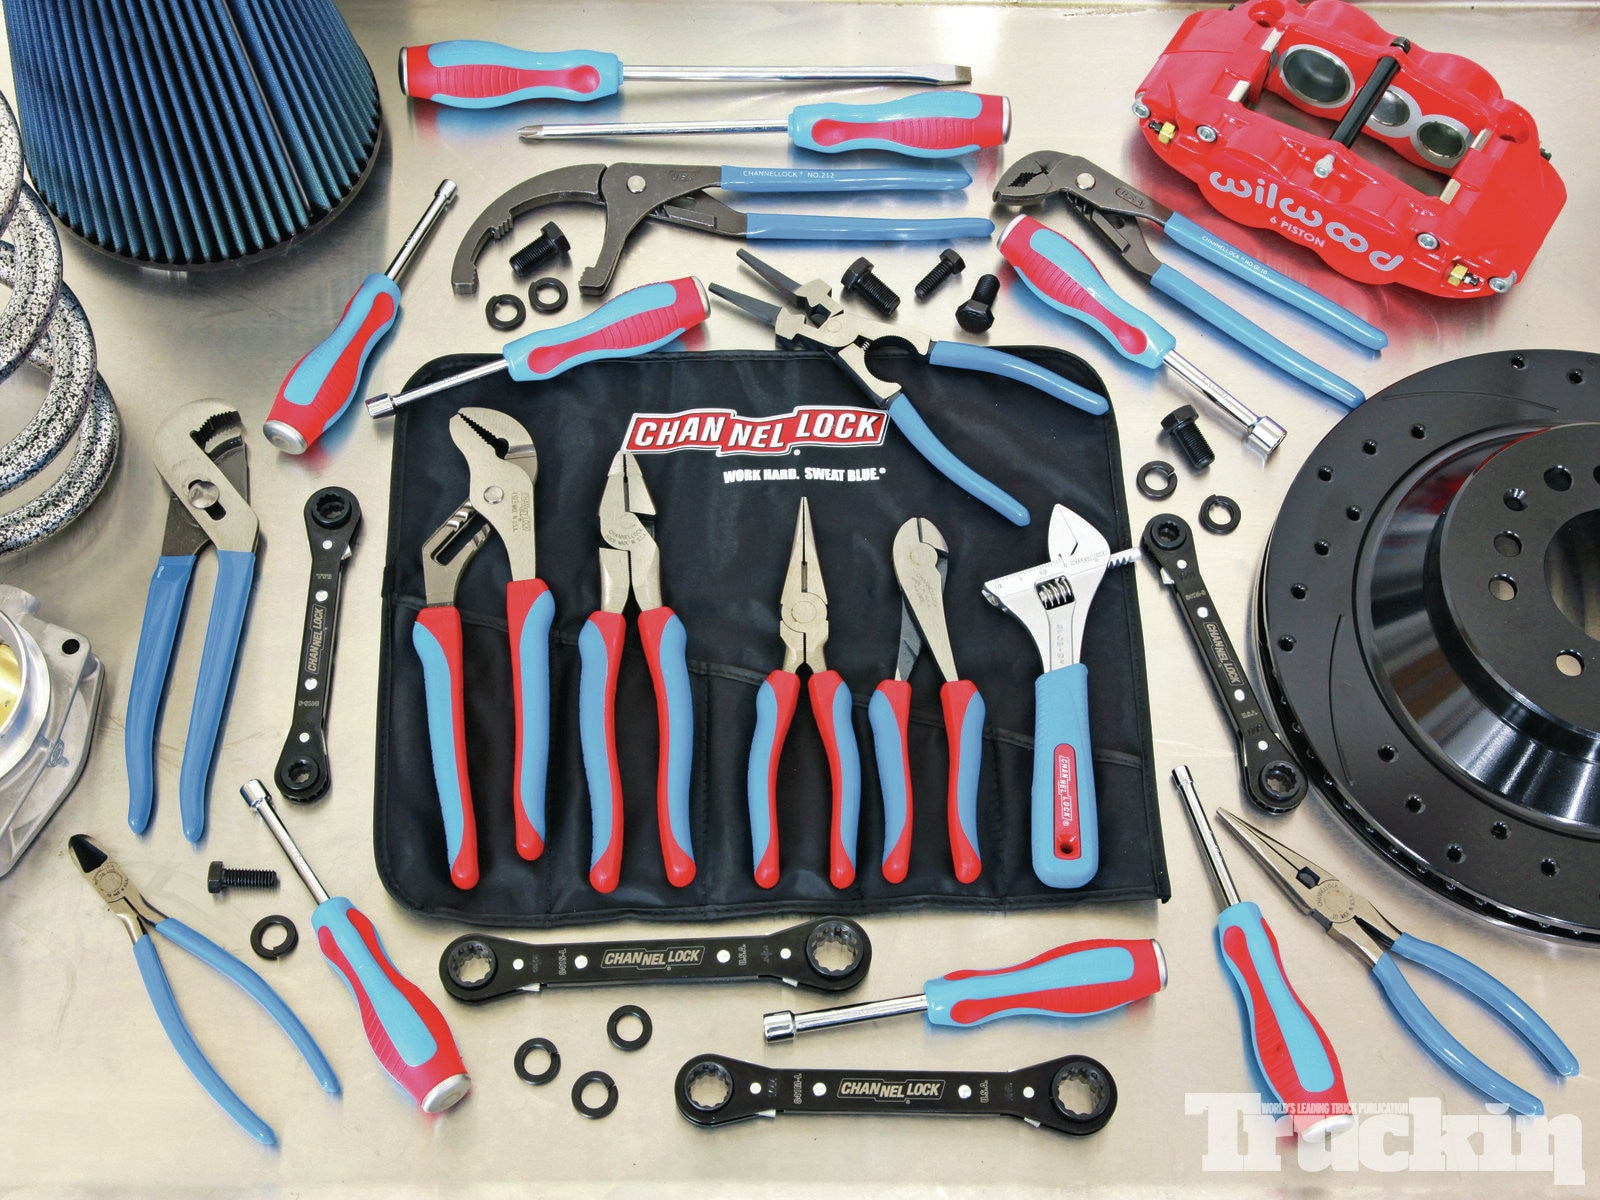 channellock Pliers Drivers And Wrenches tool Set